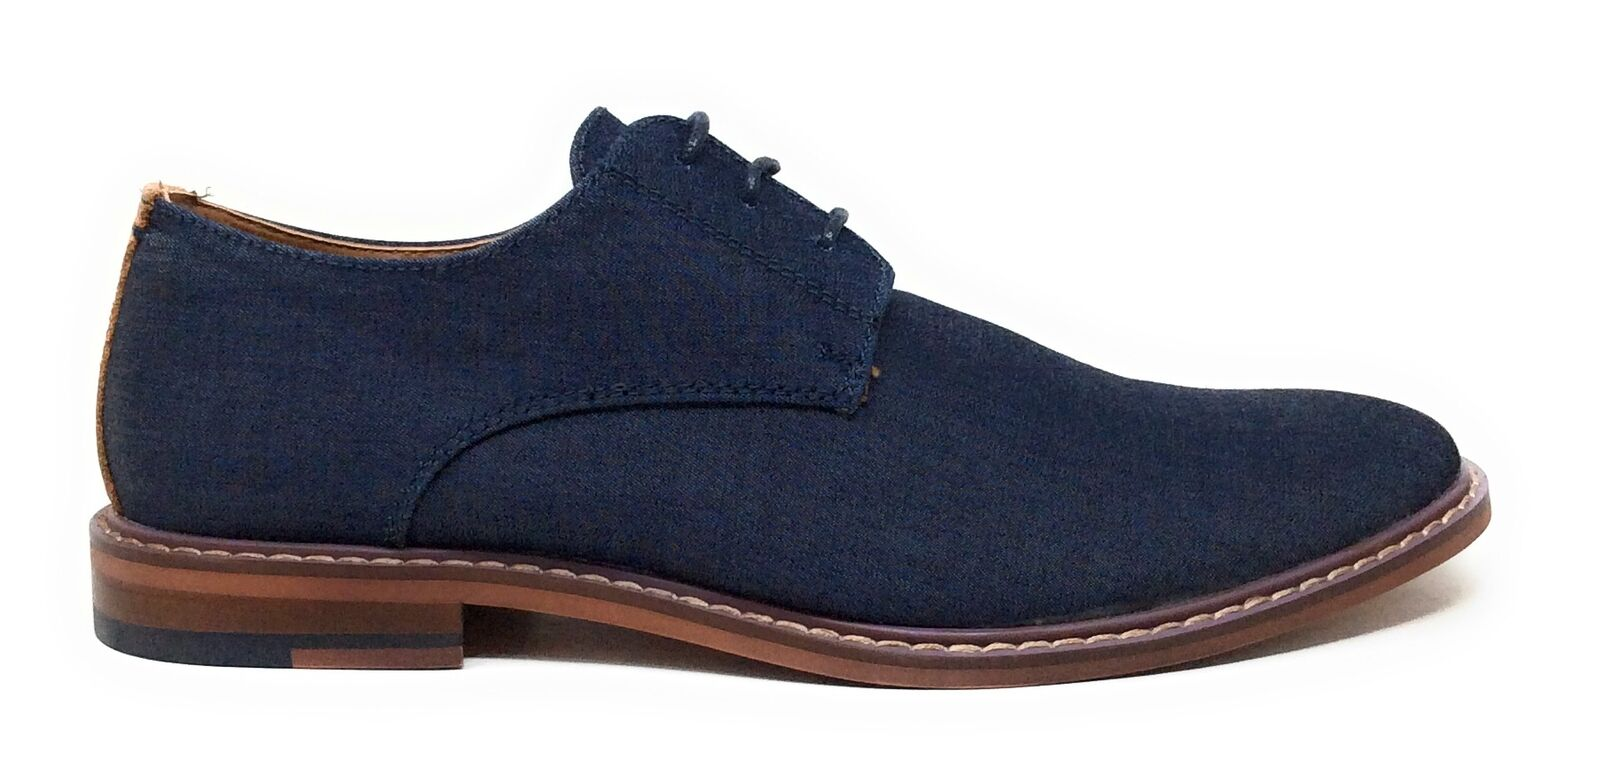 Jump J75 Mens Primo Oxford Casual Shoes Round Toe Medium Blue Size 11 M